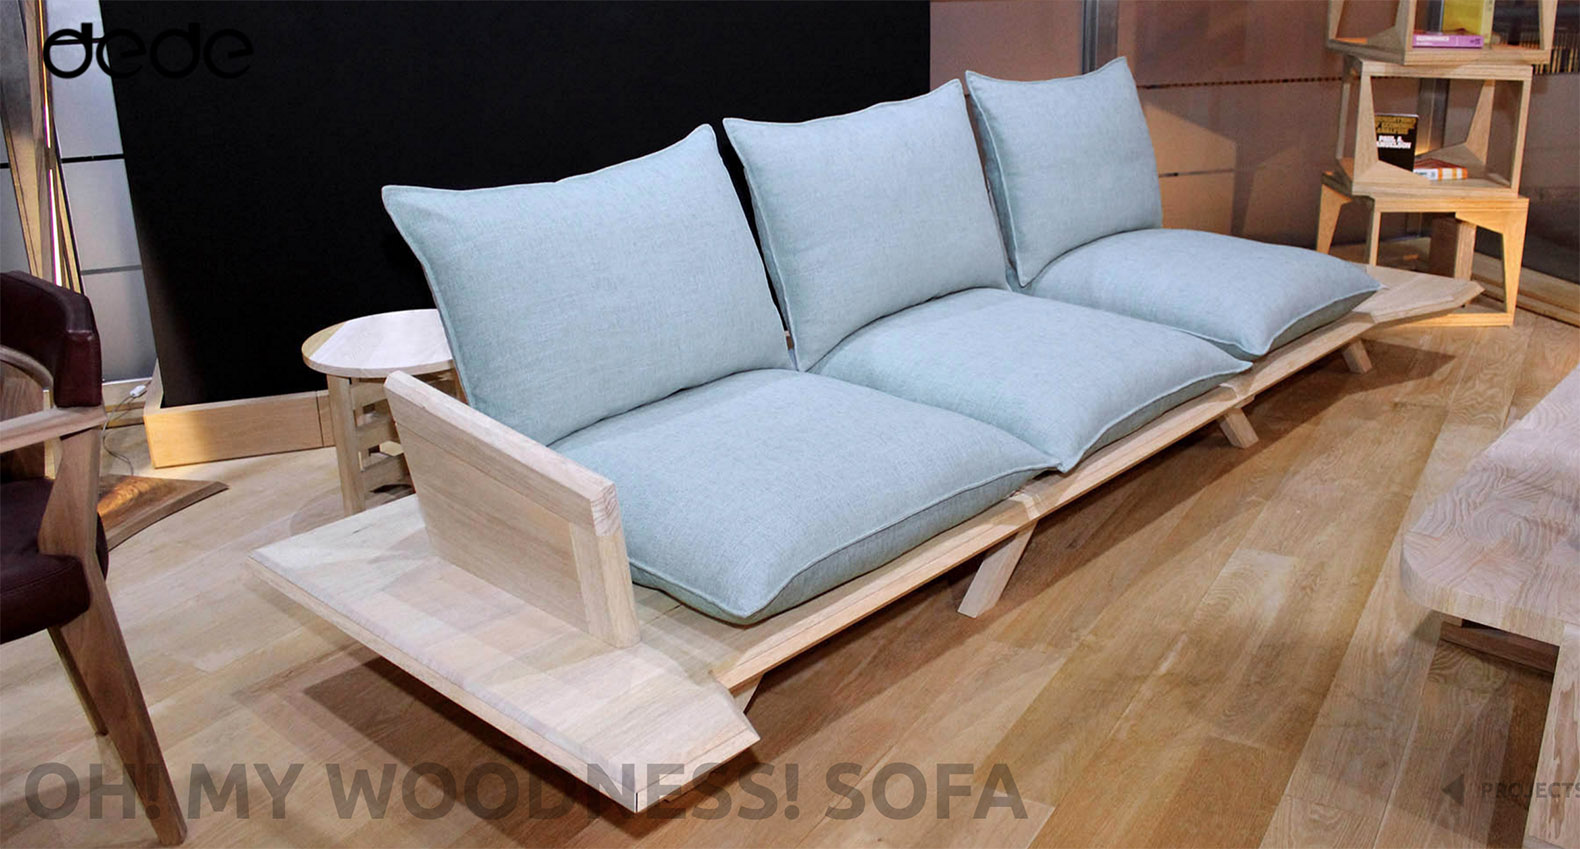 Tremendous Flat Packed Sofas Home And Textiles Machost Co Dining Chair Design Ideas Machostcouk